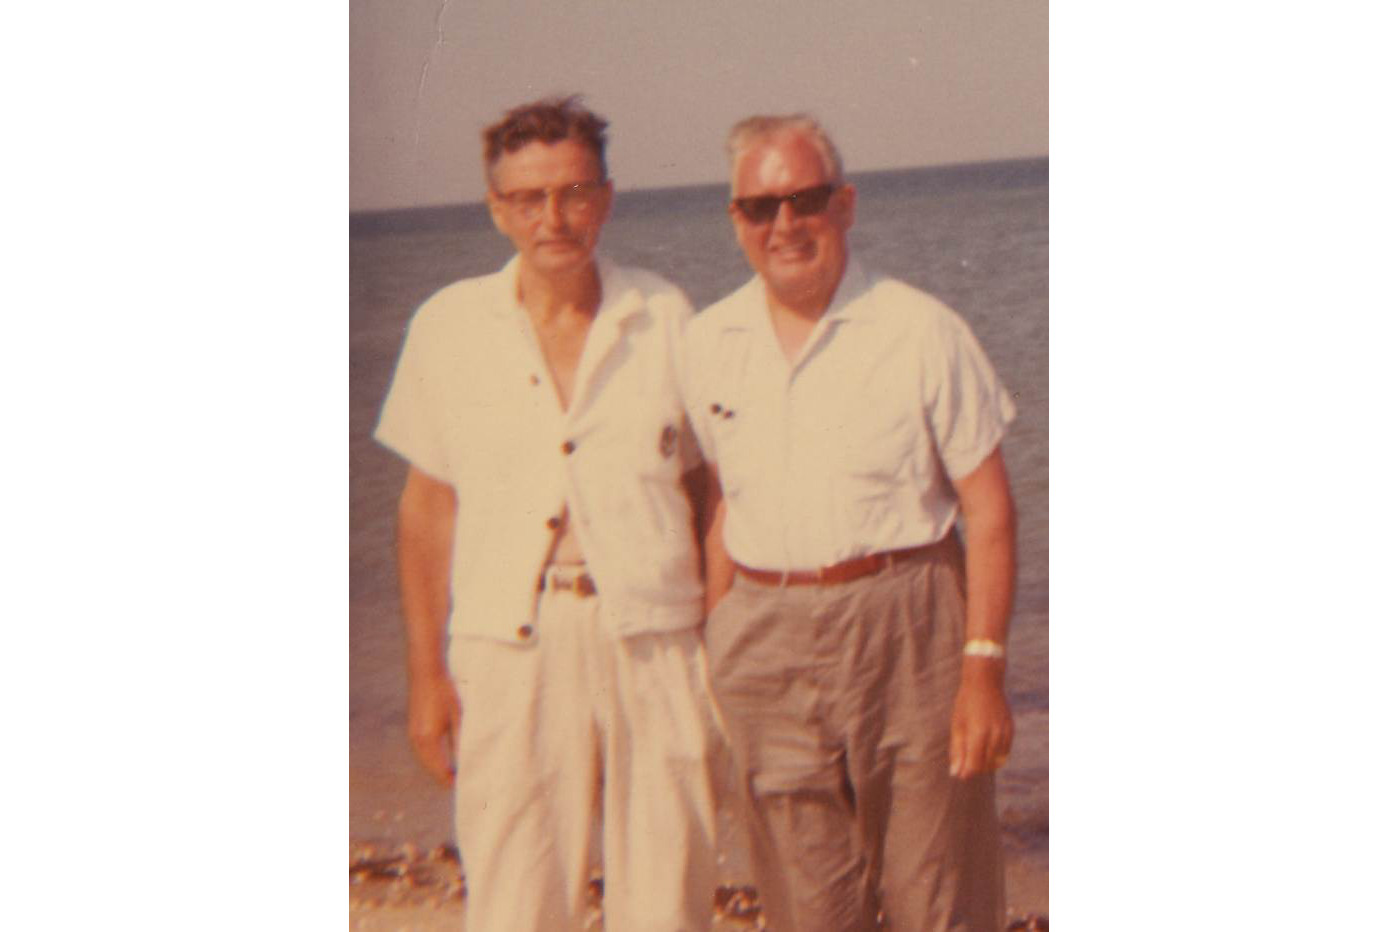 Dad Jim Cradock with family friend, Nantasket Beach, 1960.